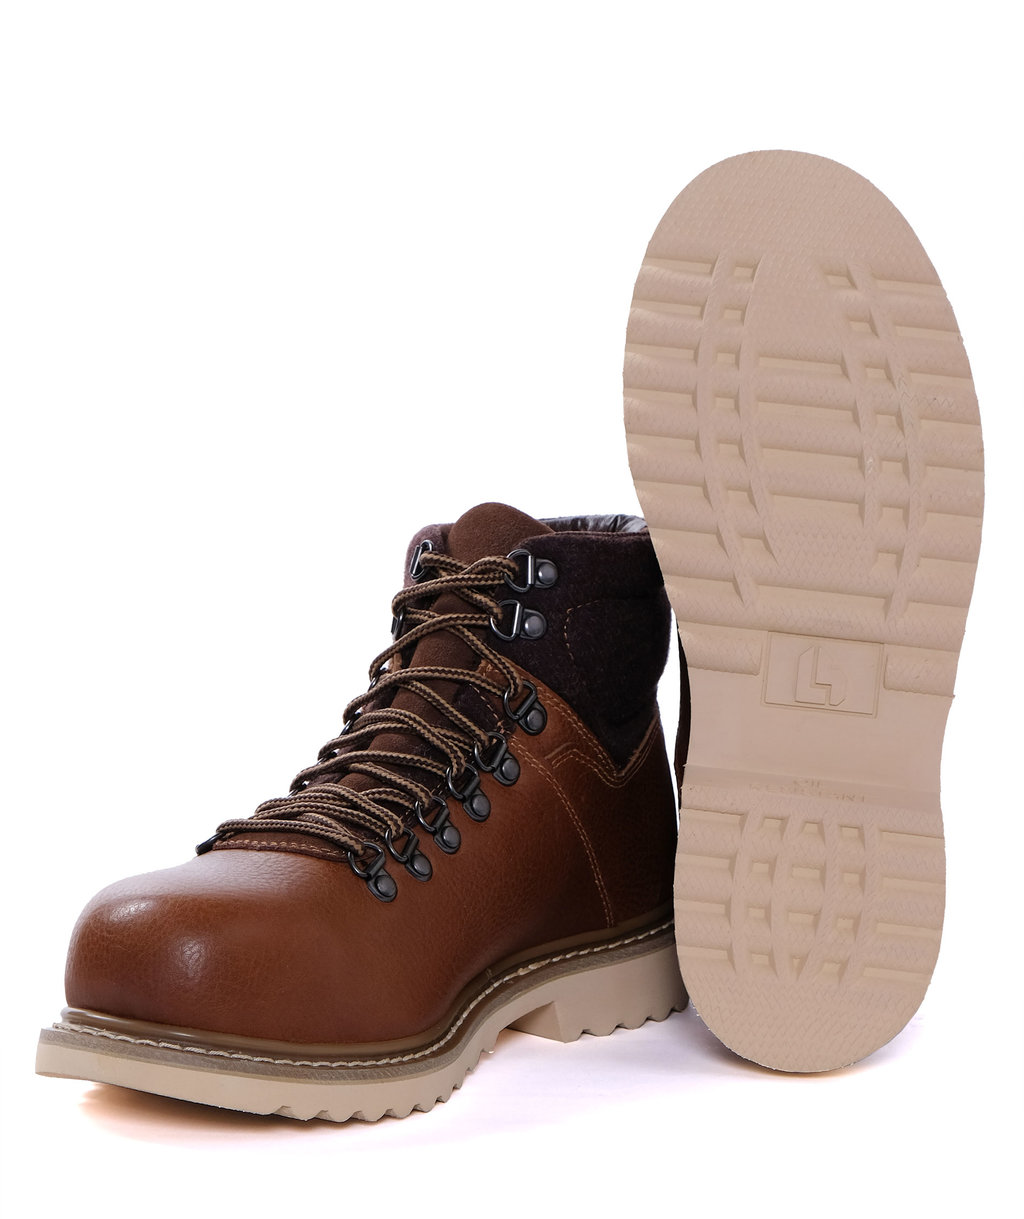 L.Brador safety boots S1P, Brown